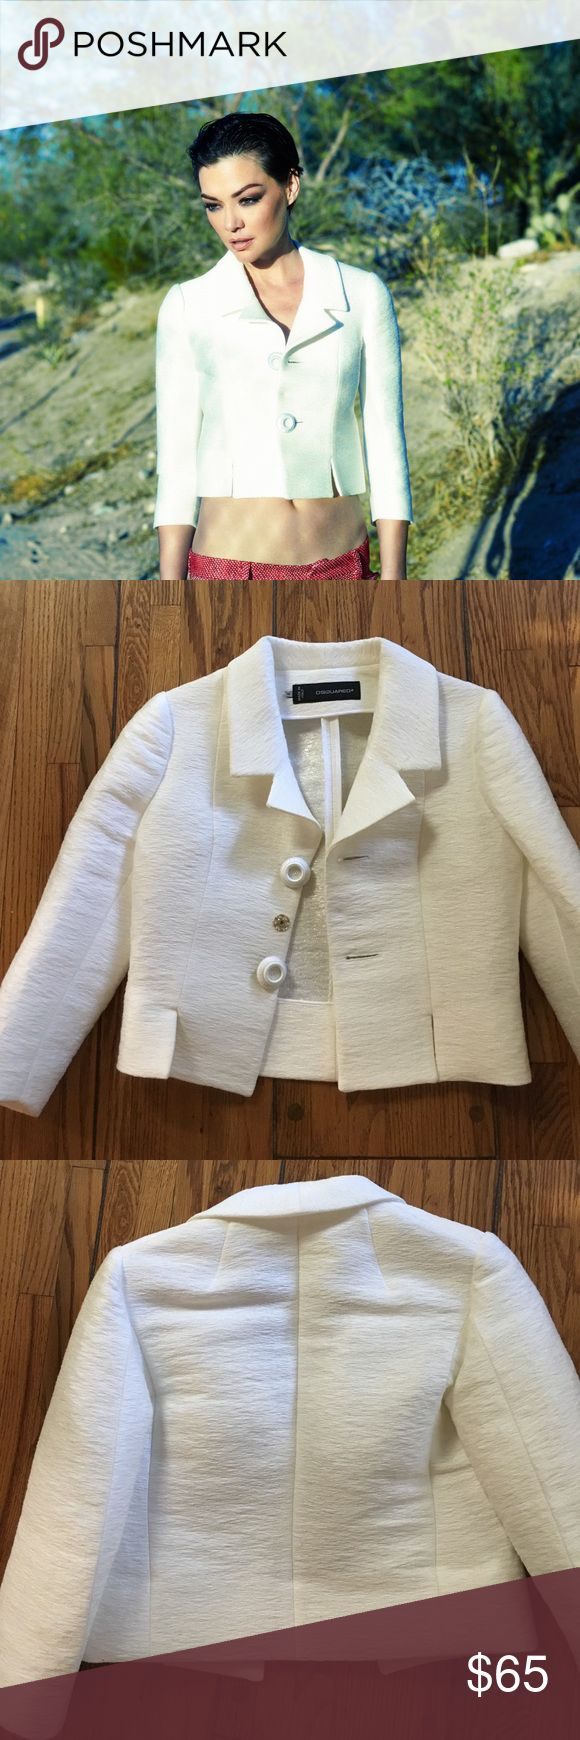 DSQUARED2 cropped jacket Cropped jacket is cotton blend and made in Italy. Wore it once in photo shoot pictured here. I noticed a faint mark on collar and tried to catch it in pic here but it's very faint and didn't show up...just FYI. 😊 DSQUARED Jackets & Coats Blazers